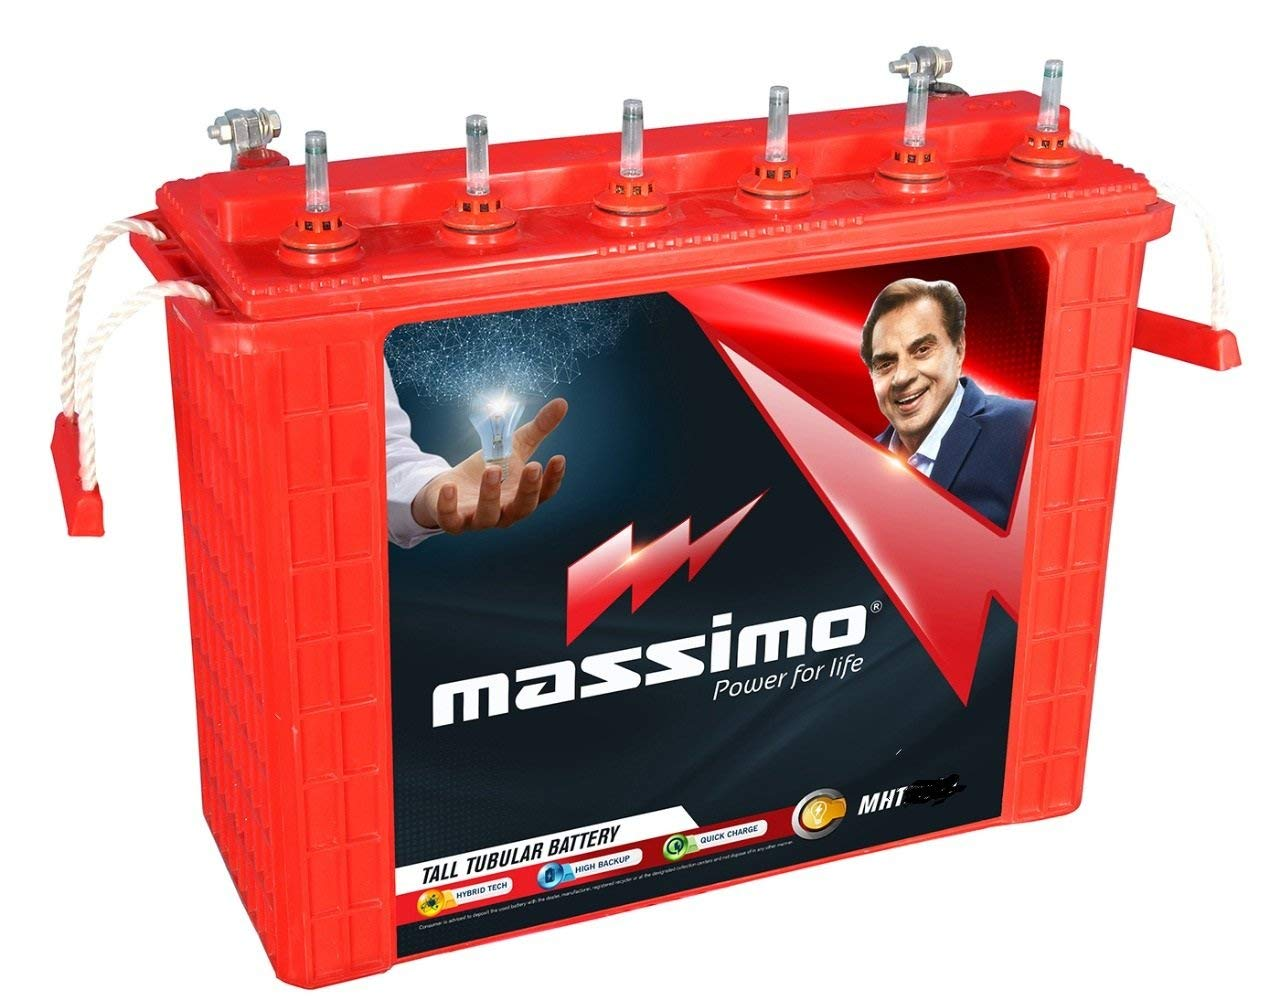 Massimo Tall Tubular MIT 2000 180AH Battery